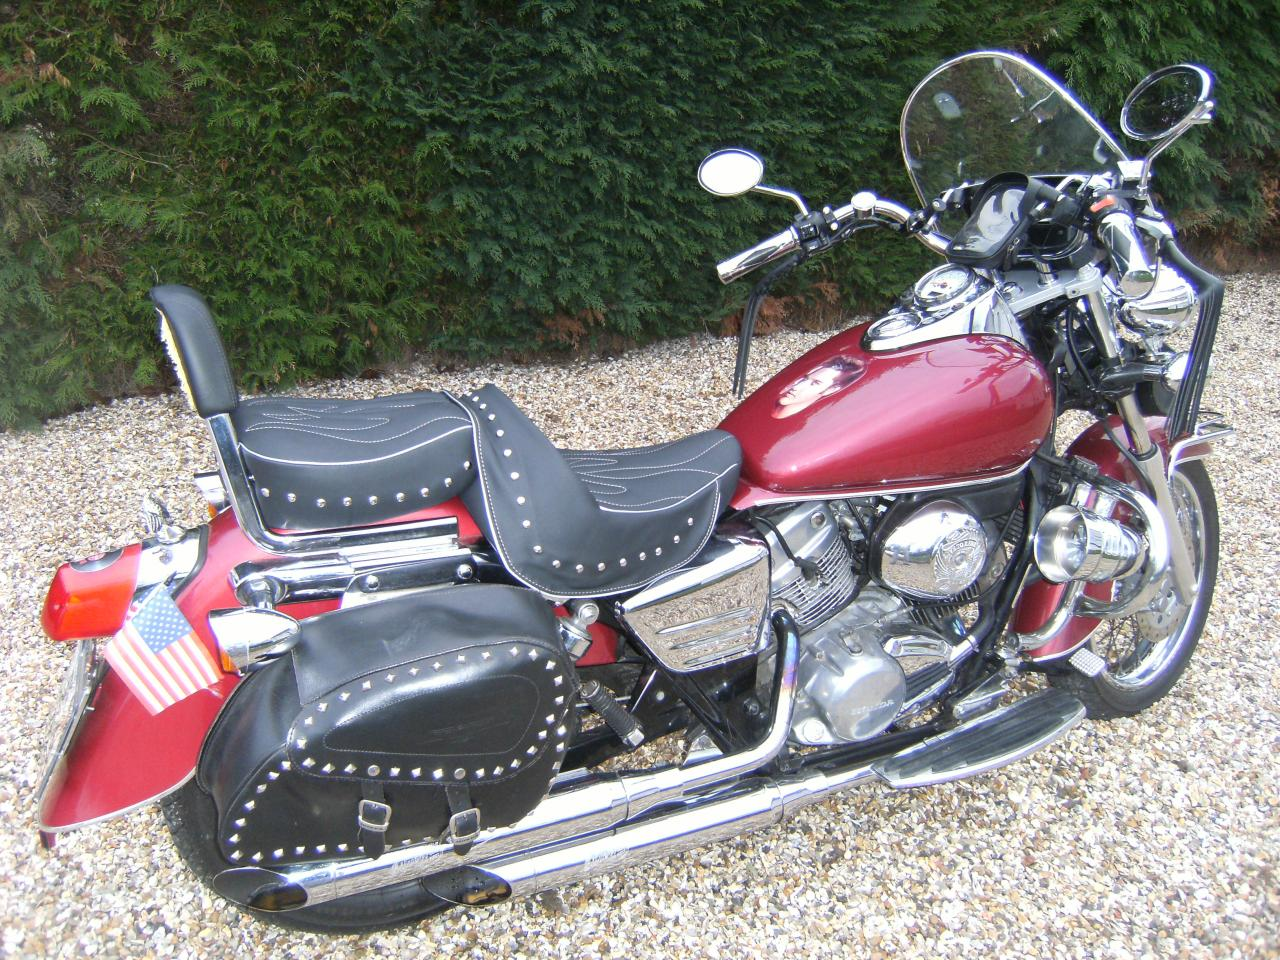 Goldwing 1800 Seat Height